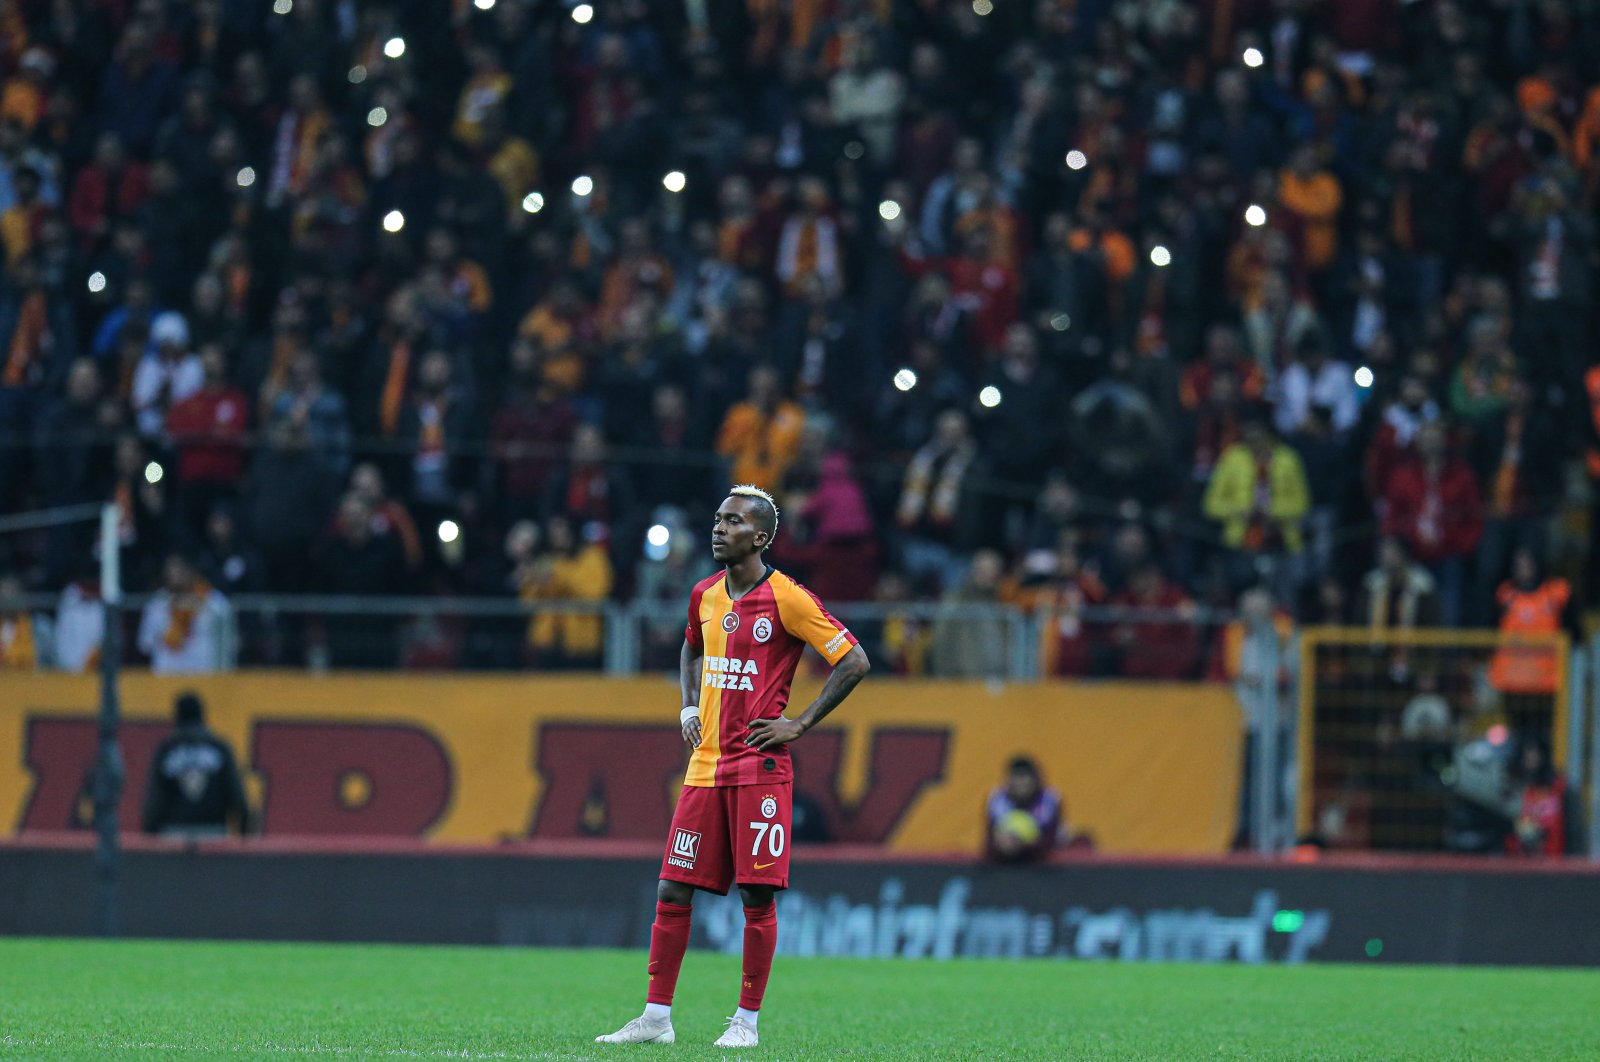 Henry Onyekuru stands during a match between Galatasaray and Kayserispor at the Turk Telekom Stadium in Istanbul on March 2, 2020. (AA Photo)